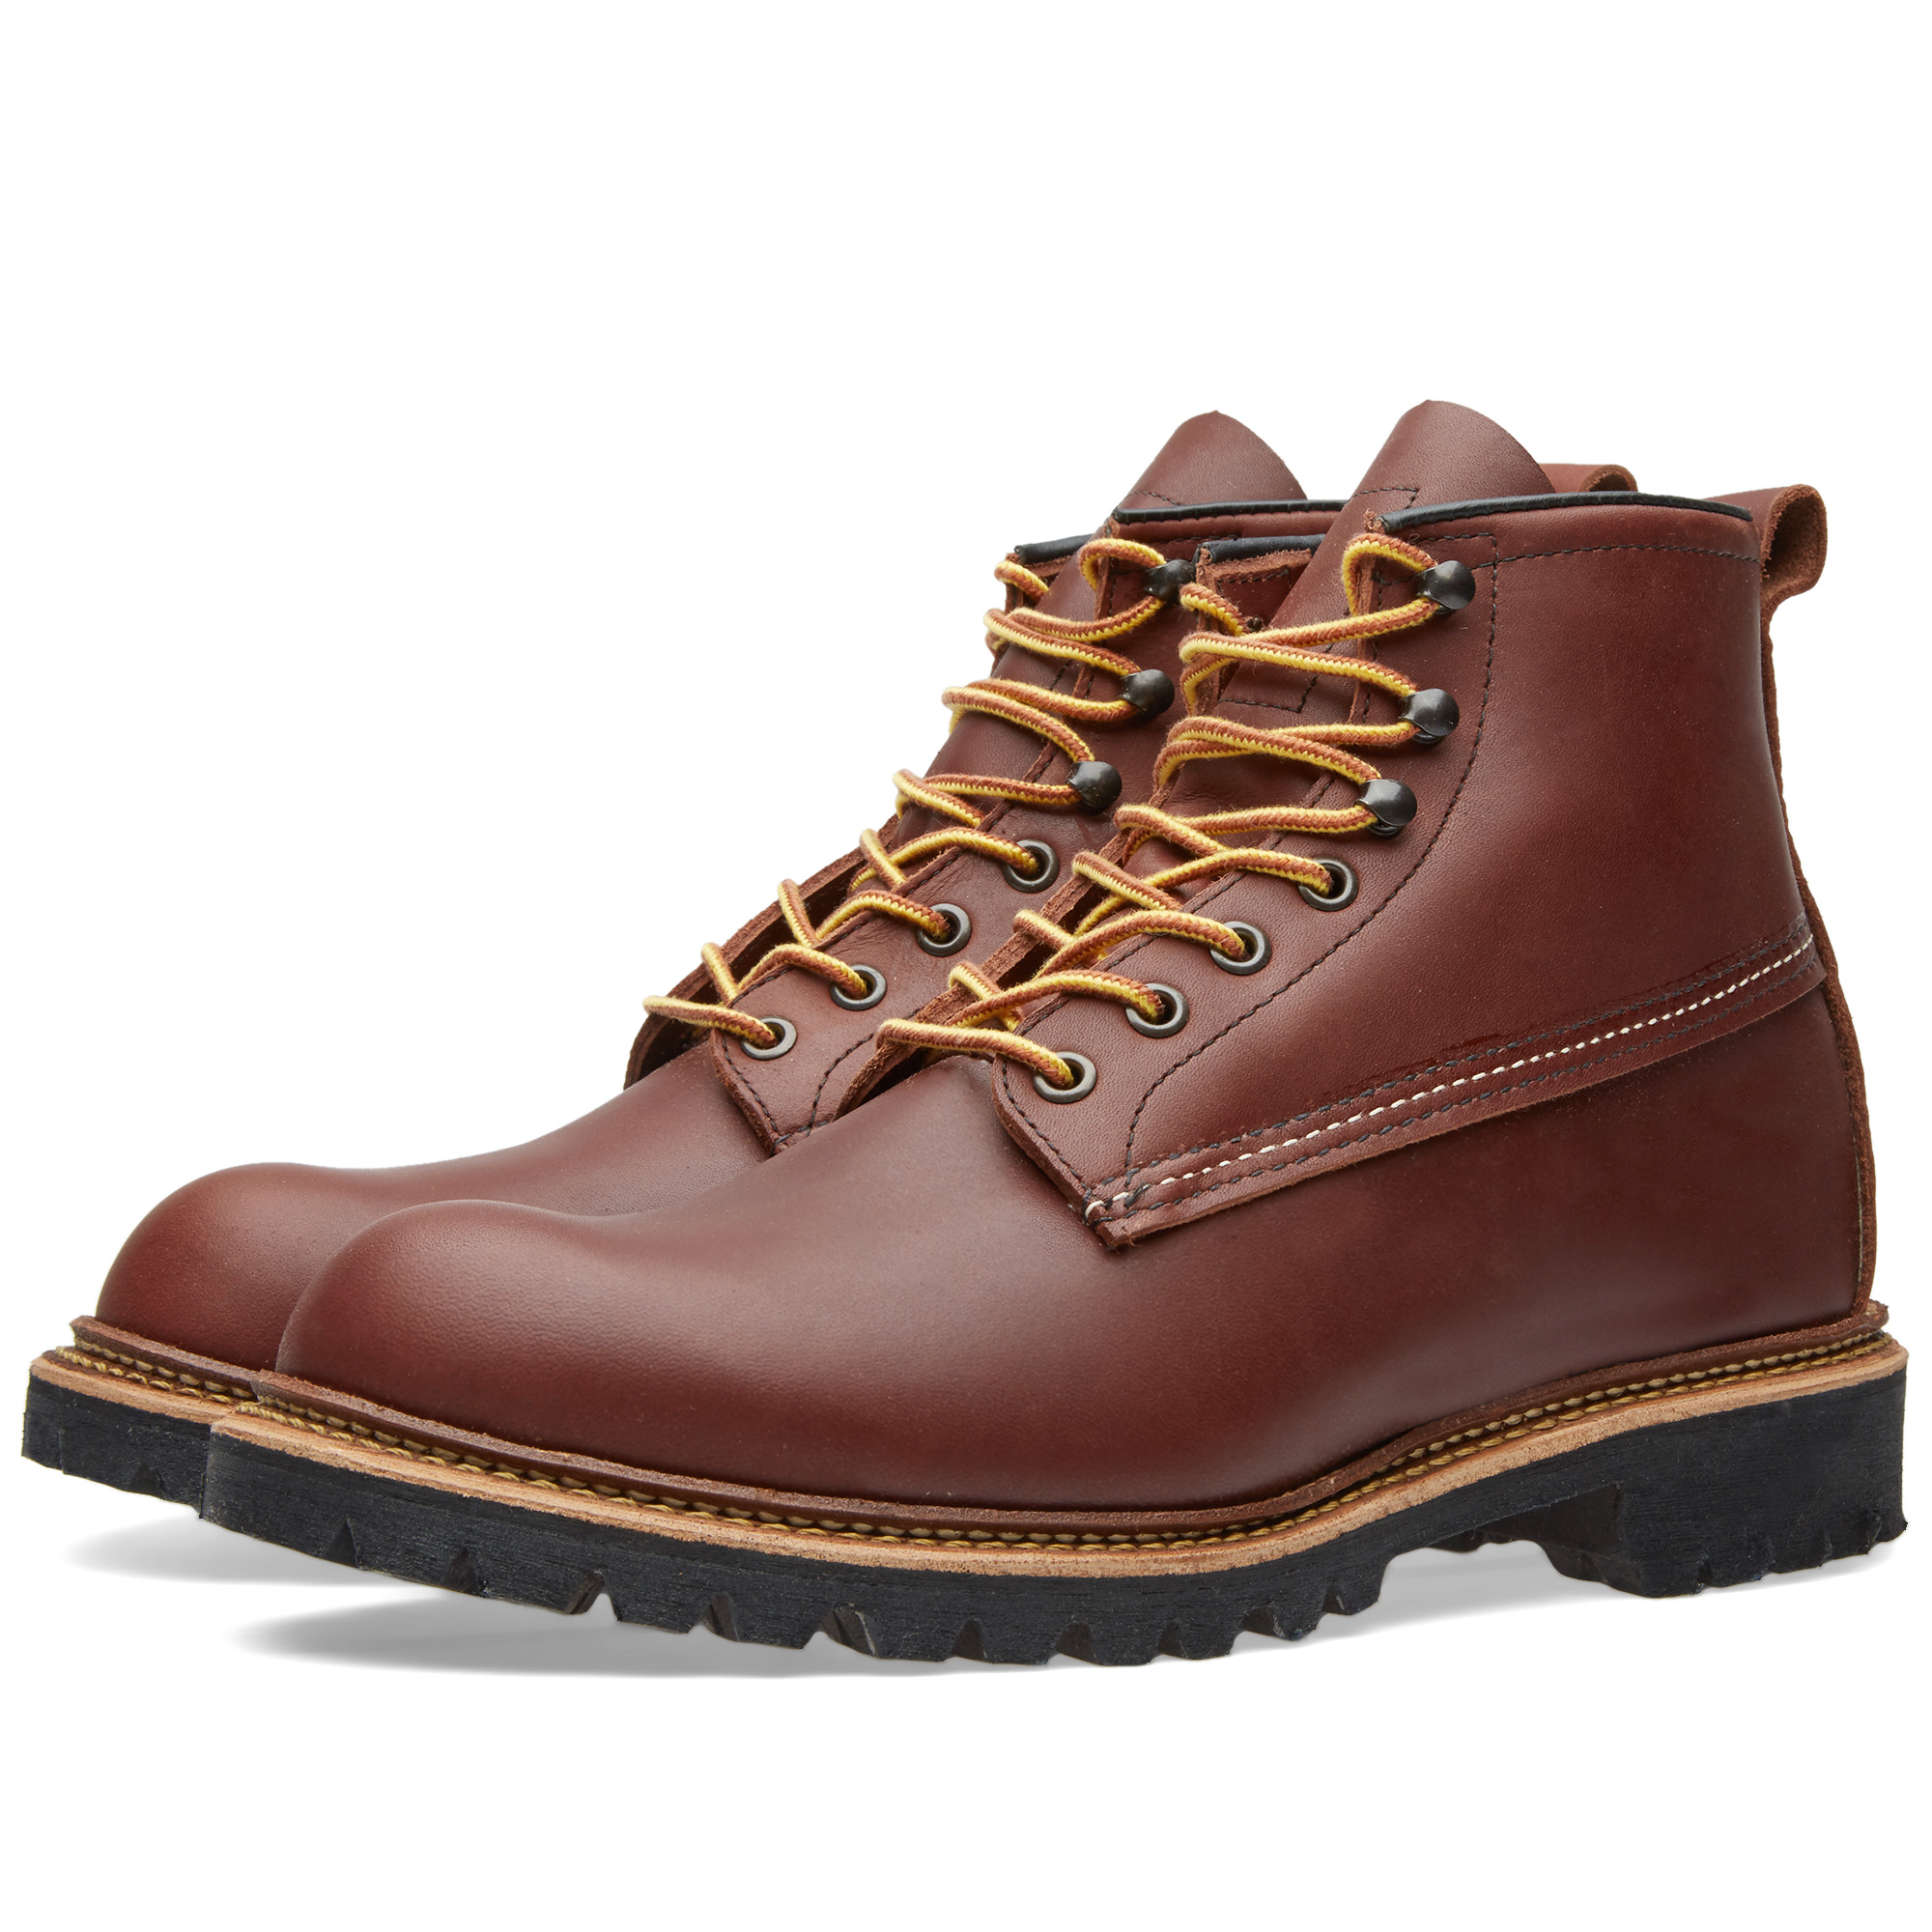 Cheap Red Wing Boots ebnBO0ta